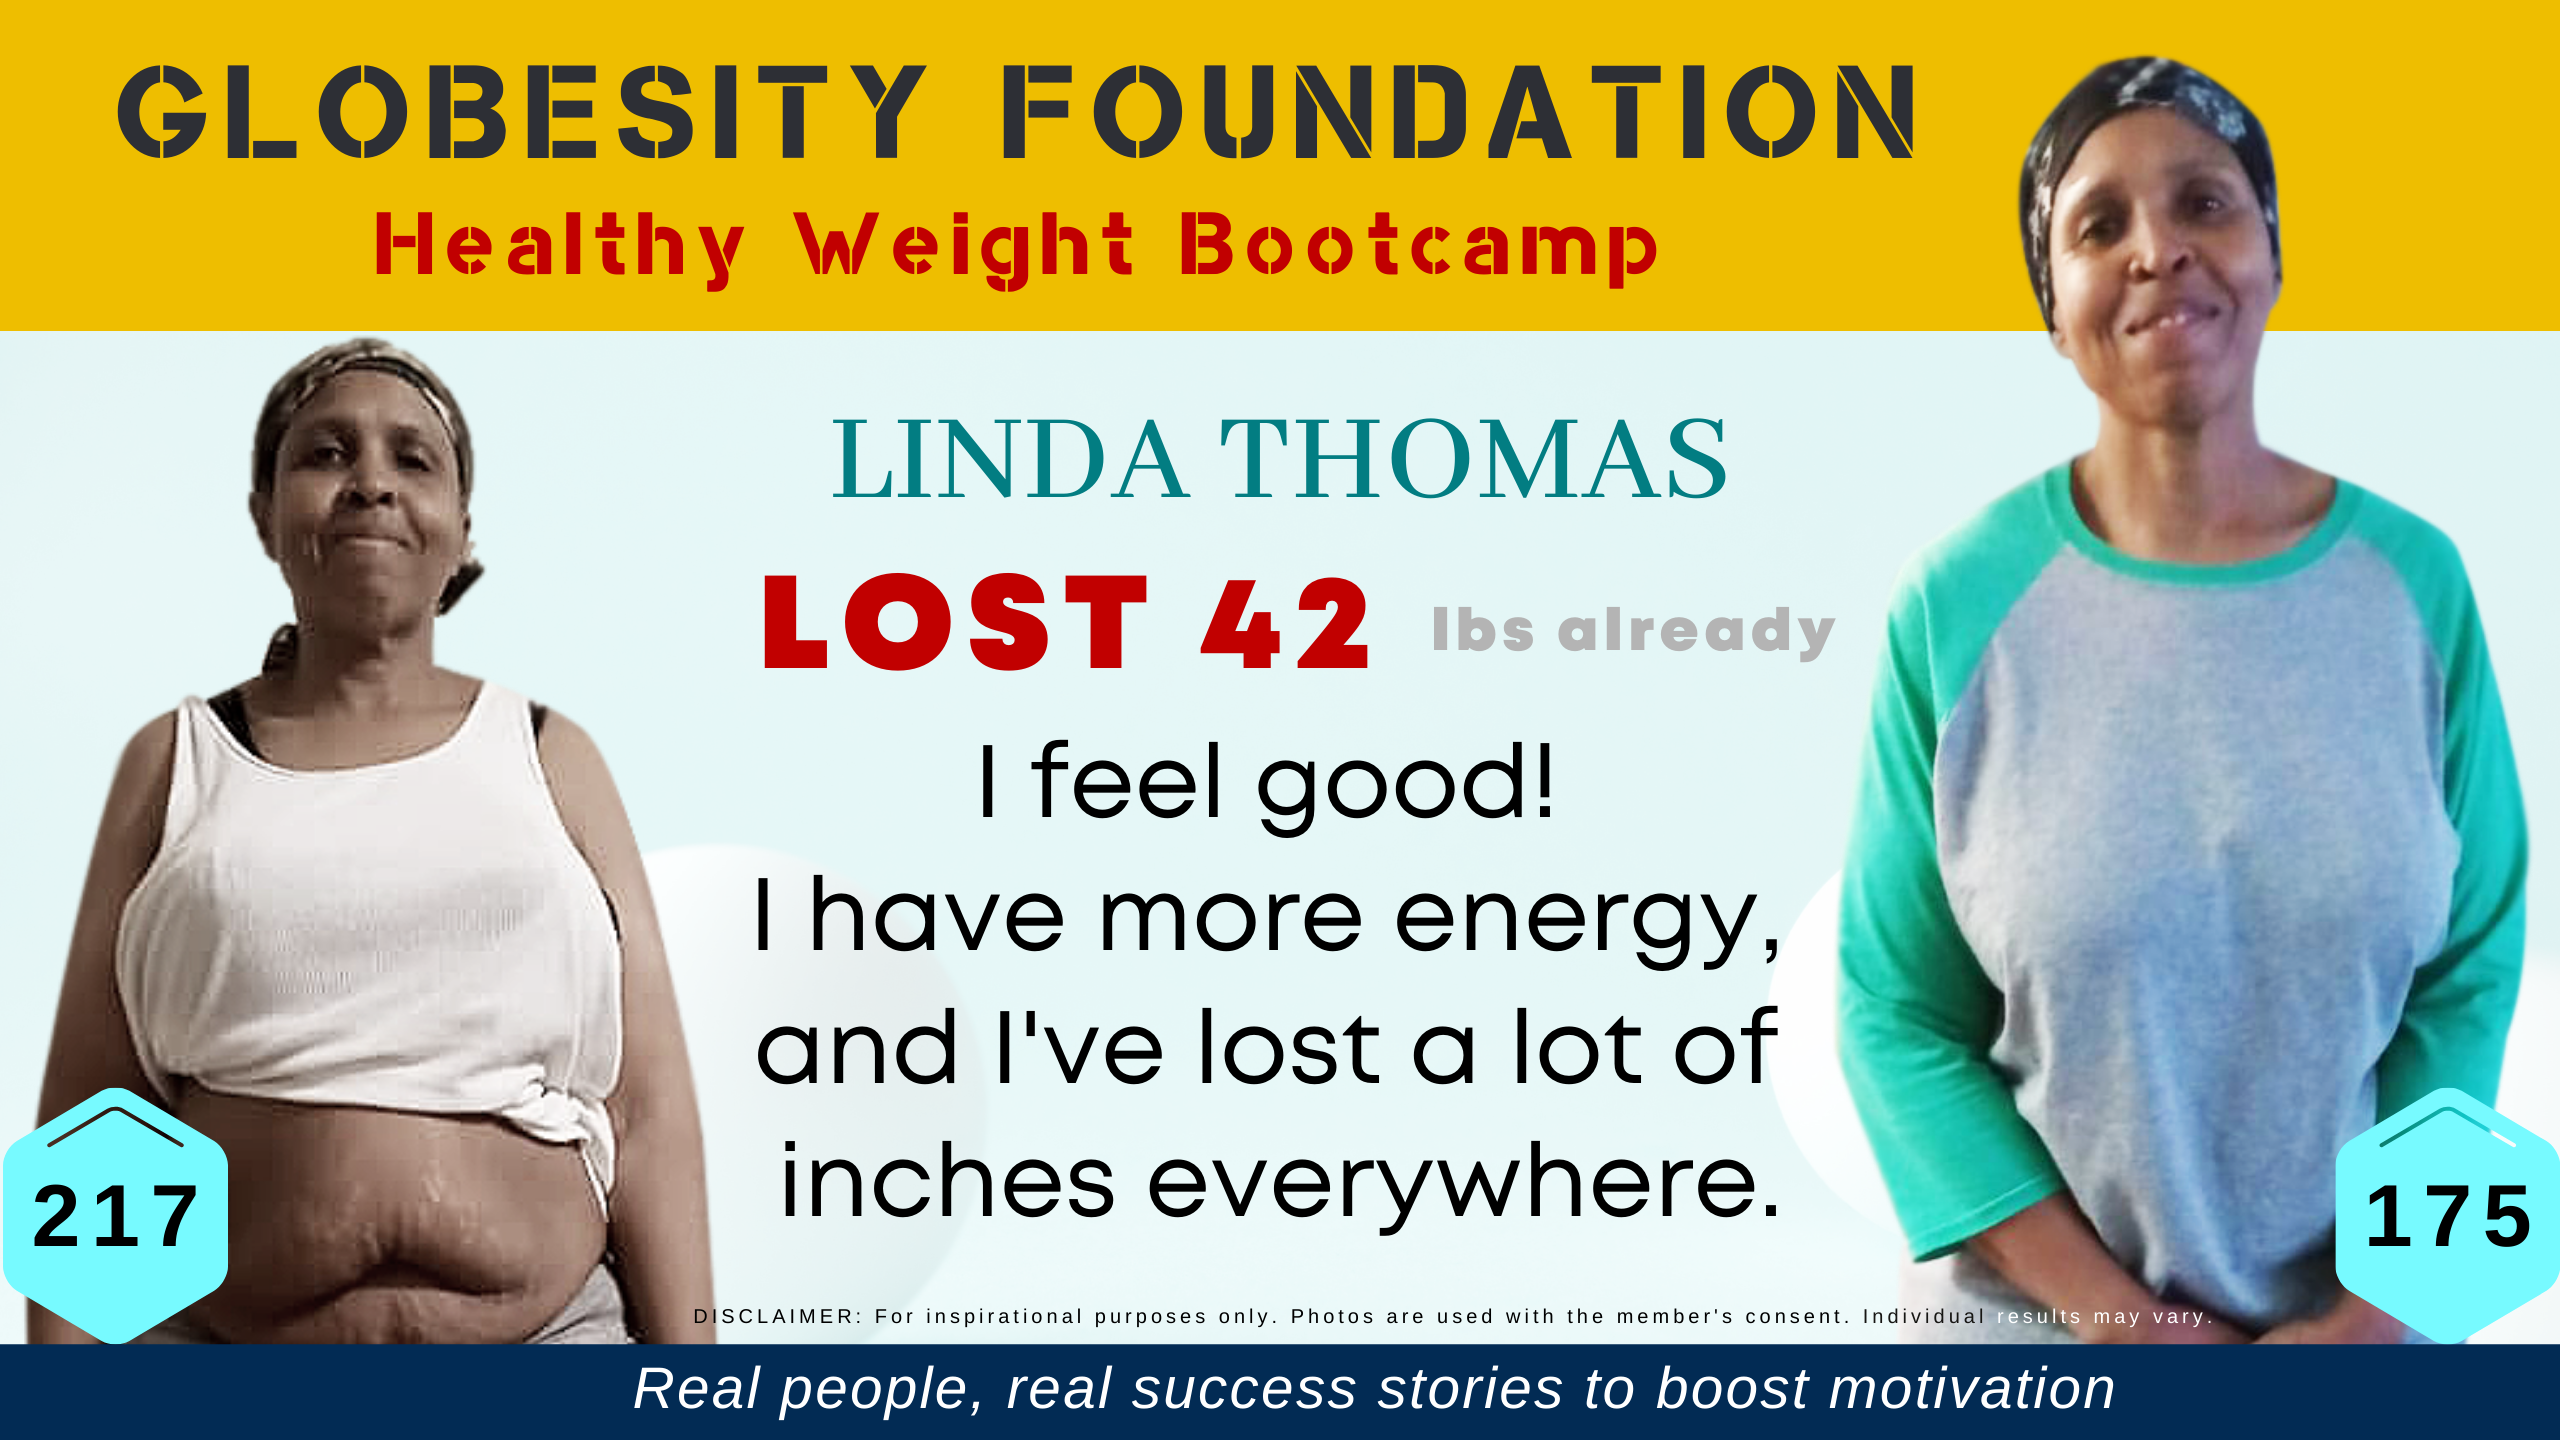 AFTER 25 YEARS, LINDA THOMAS HAS WEIGHED UNDER 200 LBS; SHE'S GRATEFUL TO GLOBESITY FOUNDATION